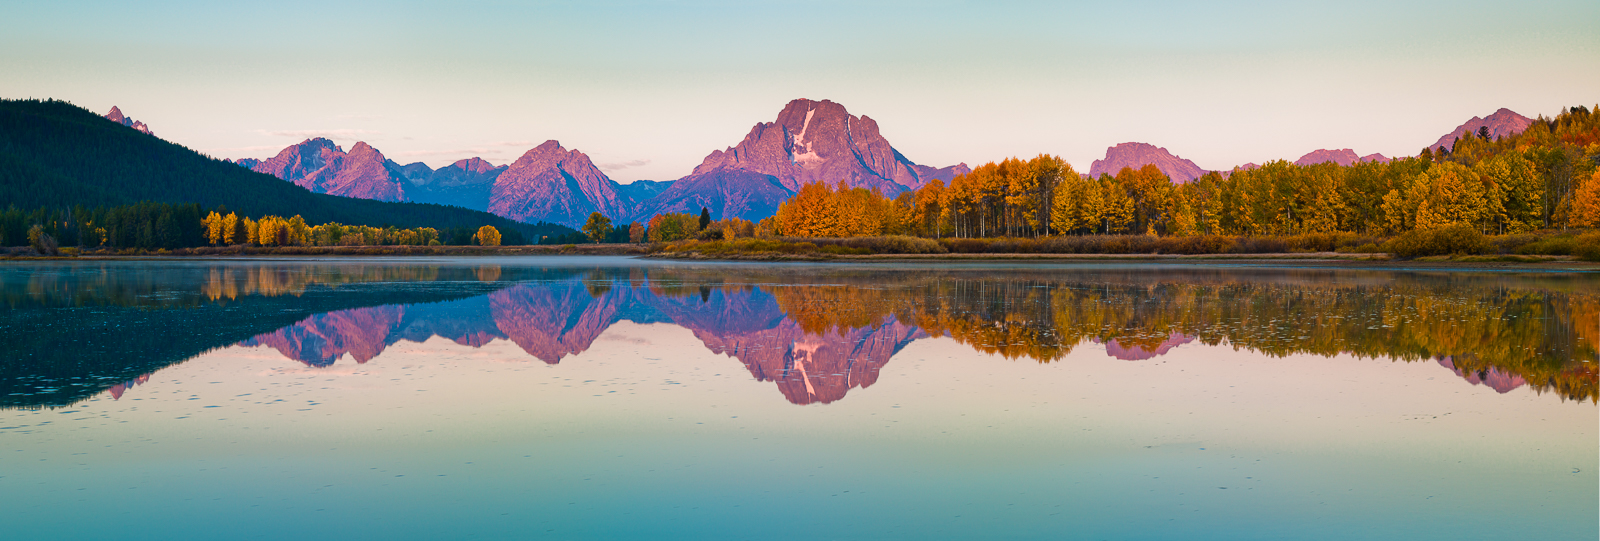 Teton Spectacular,Autumn,Grand Teton NP,Panoramic,River,Wyoming,horizontal,mountains, photo